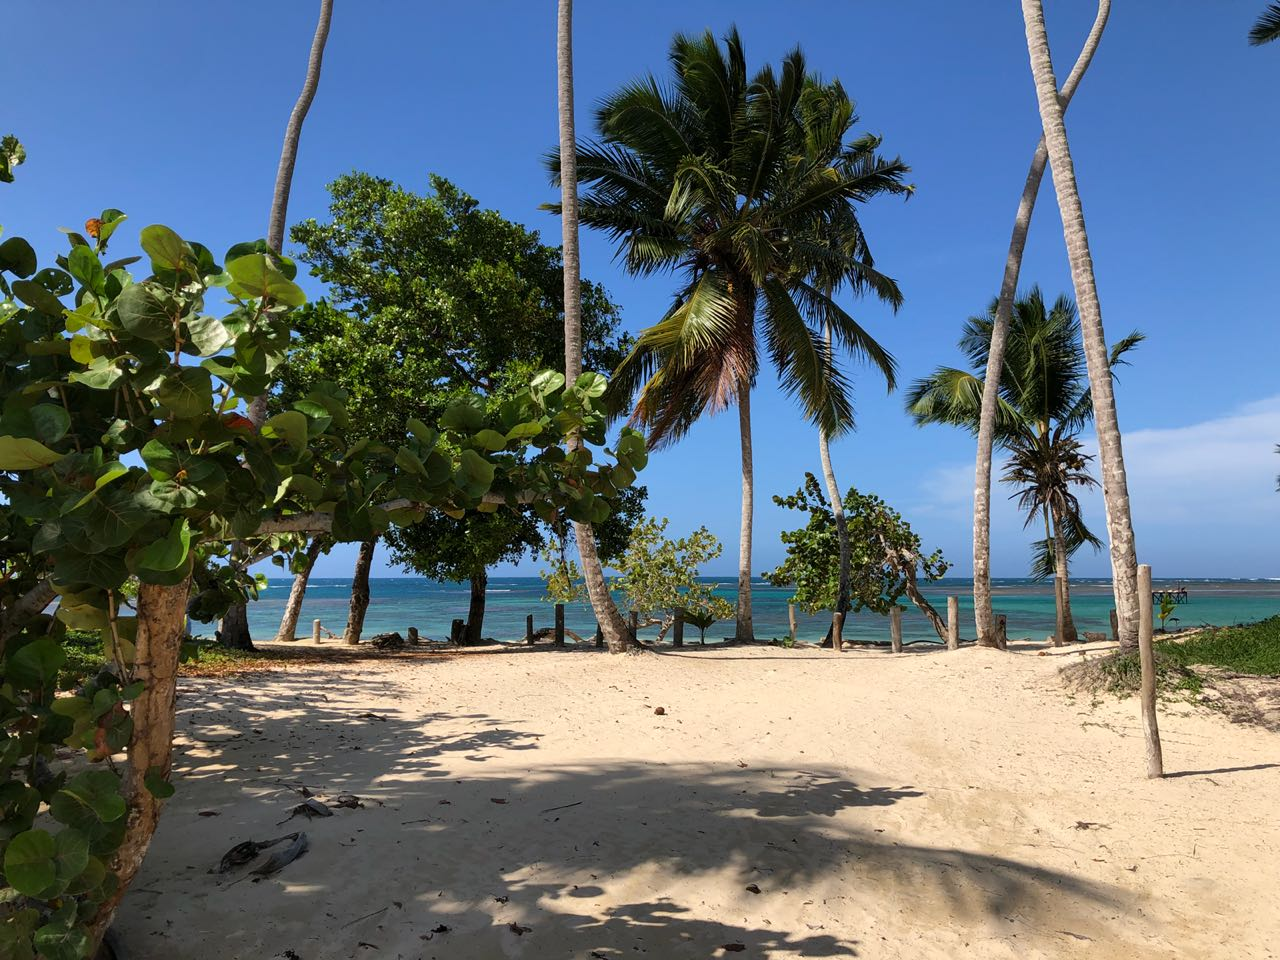 Beachfront land in for sale in Las Terrenas 4.jpeg